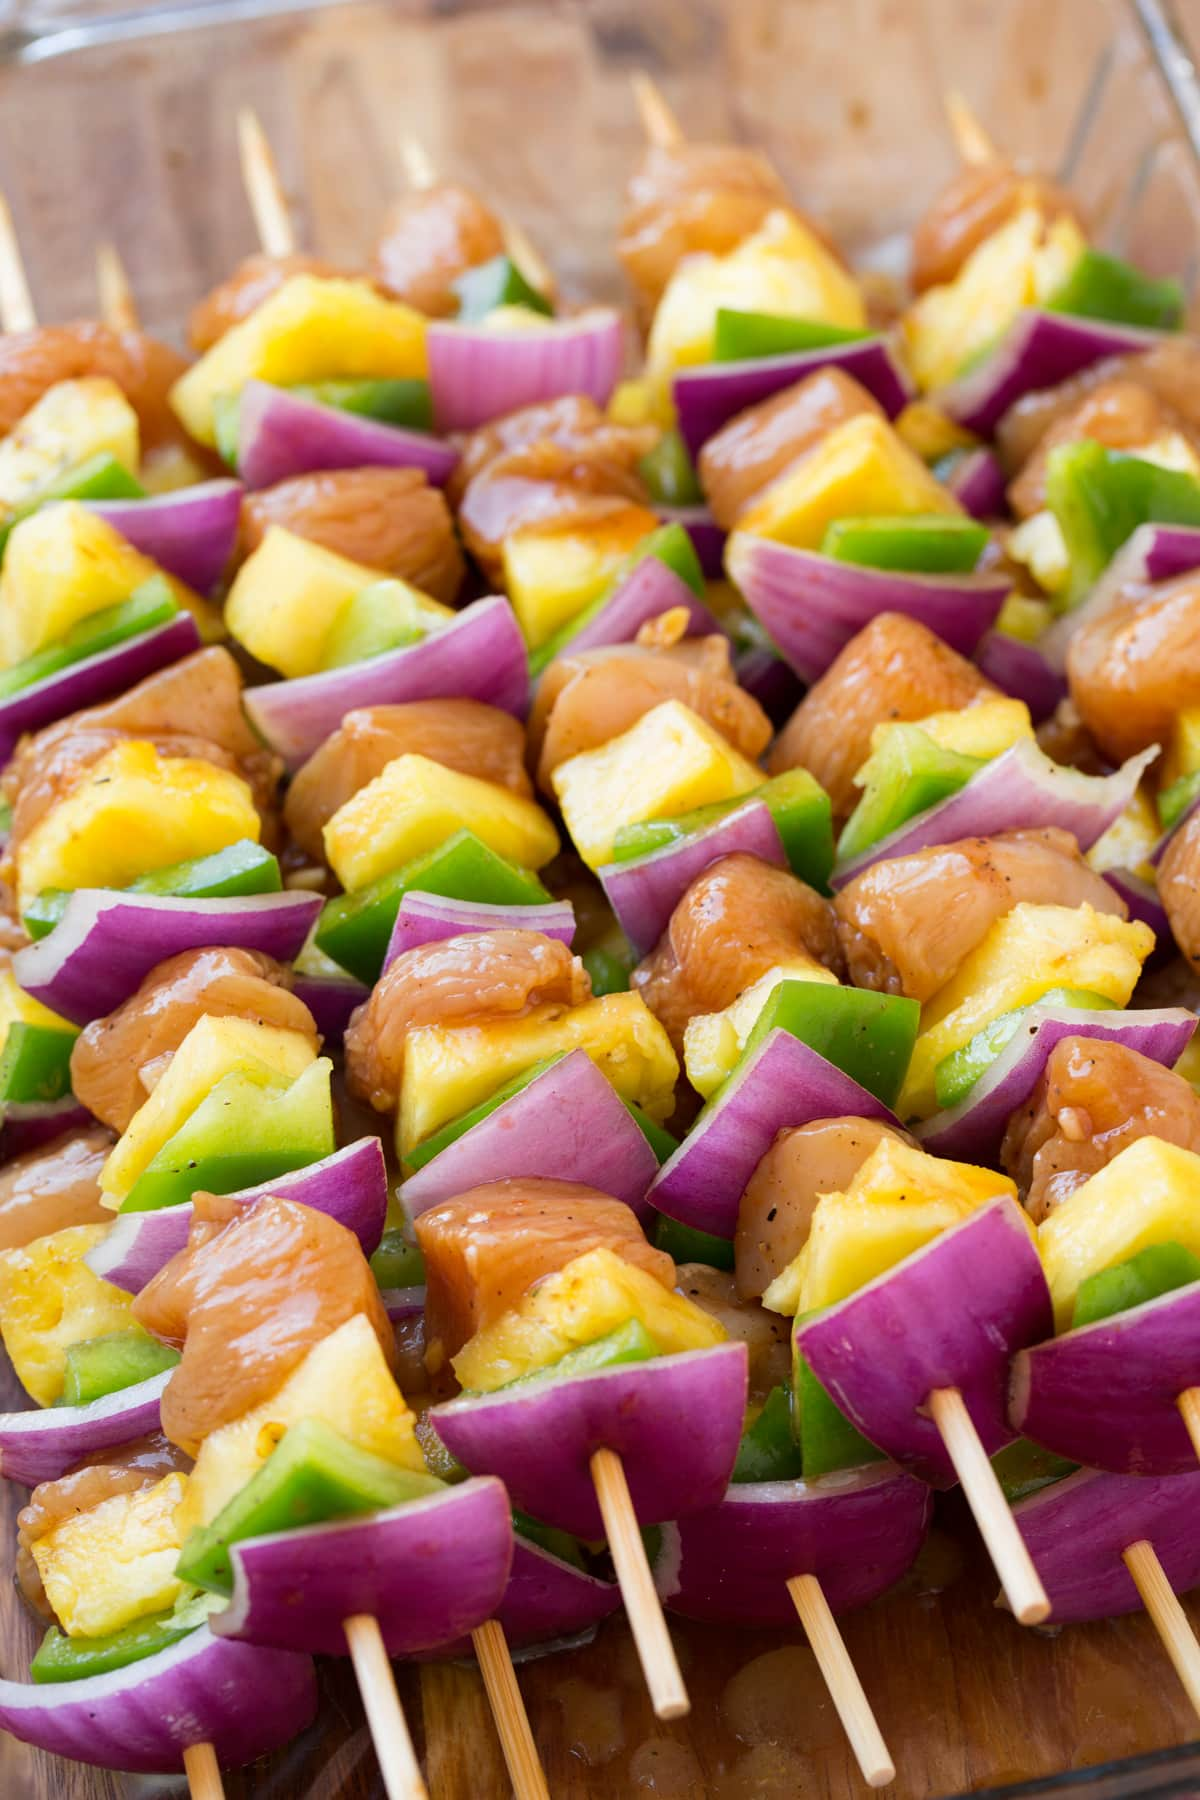 Chicken skewers with bell pepper red onion and pineapple. Shown before cooking.